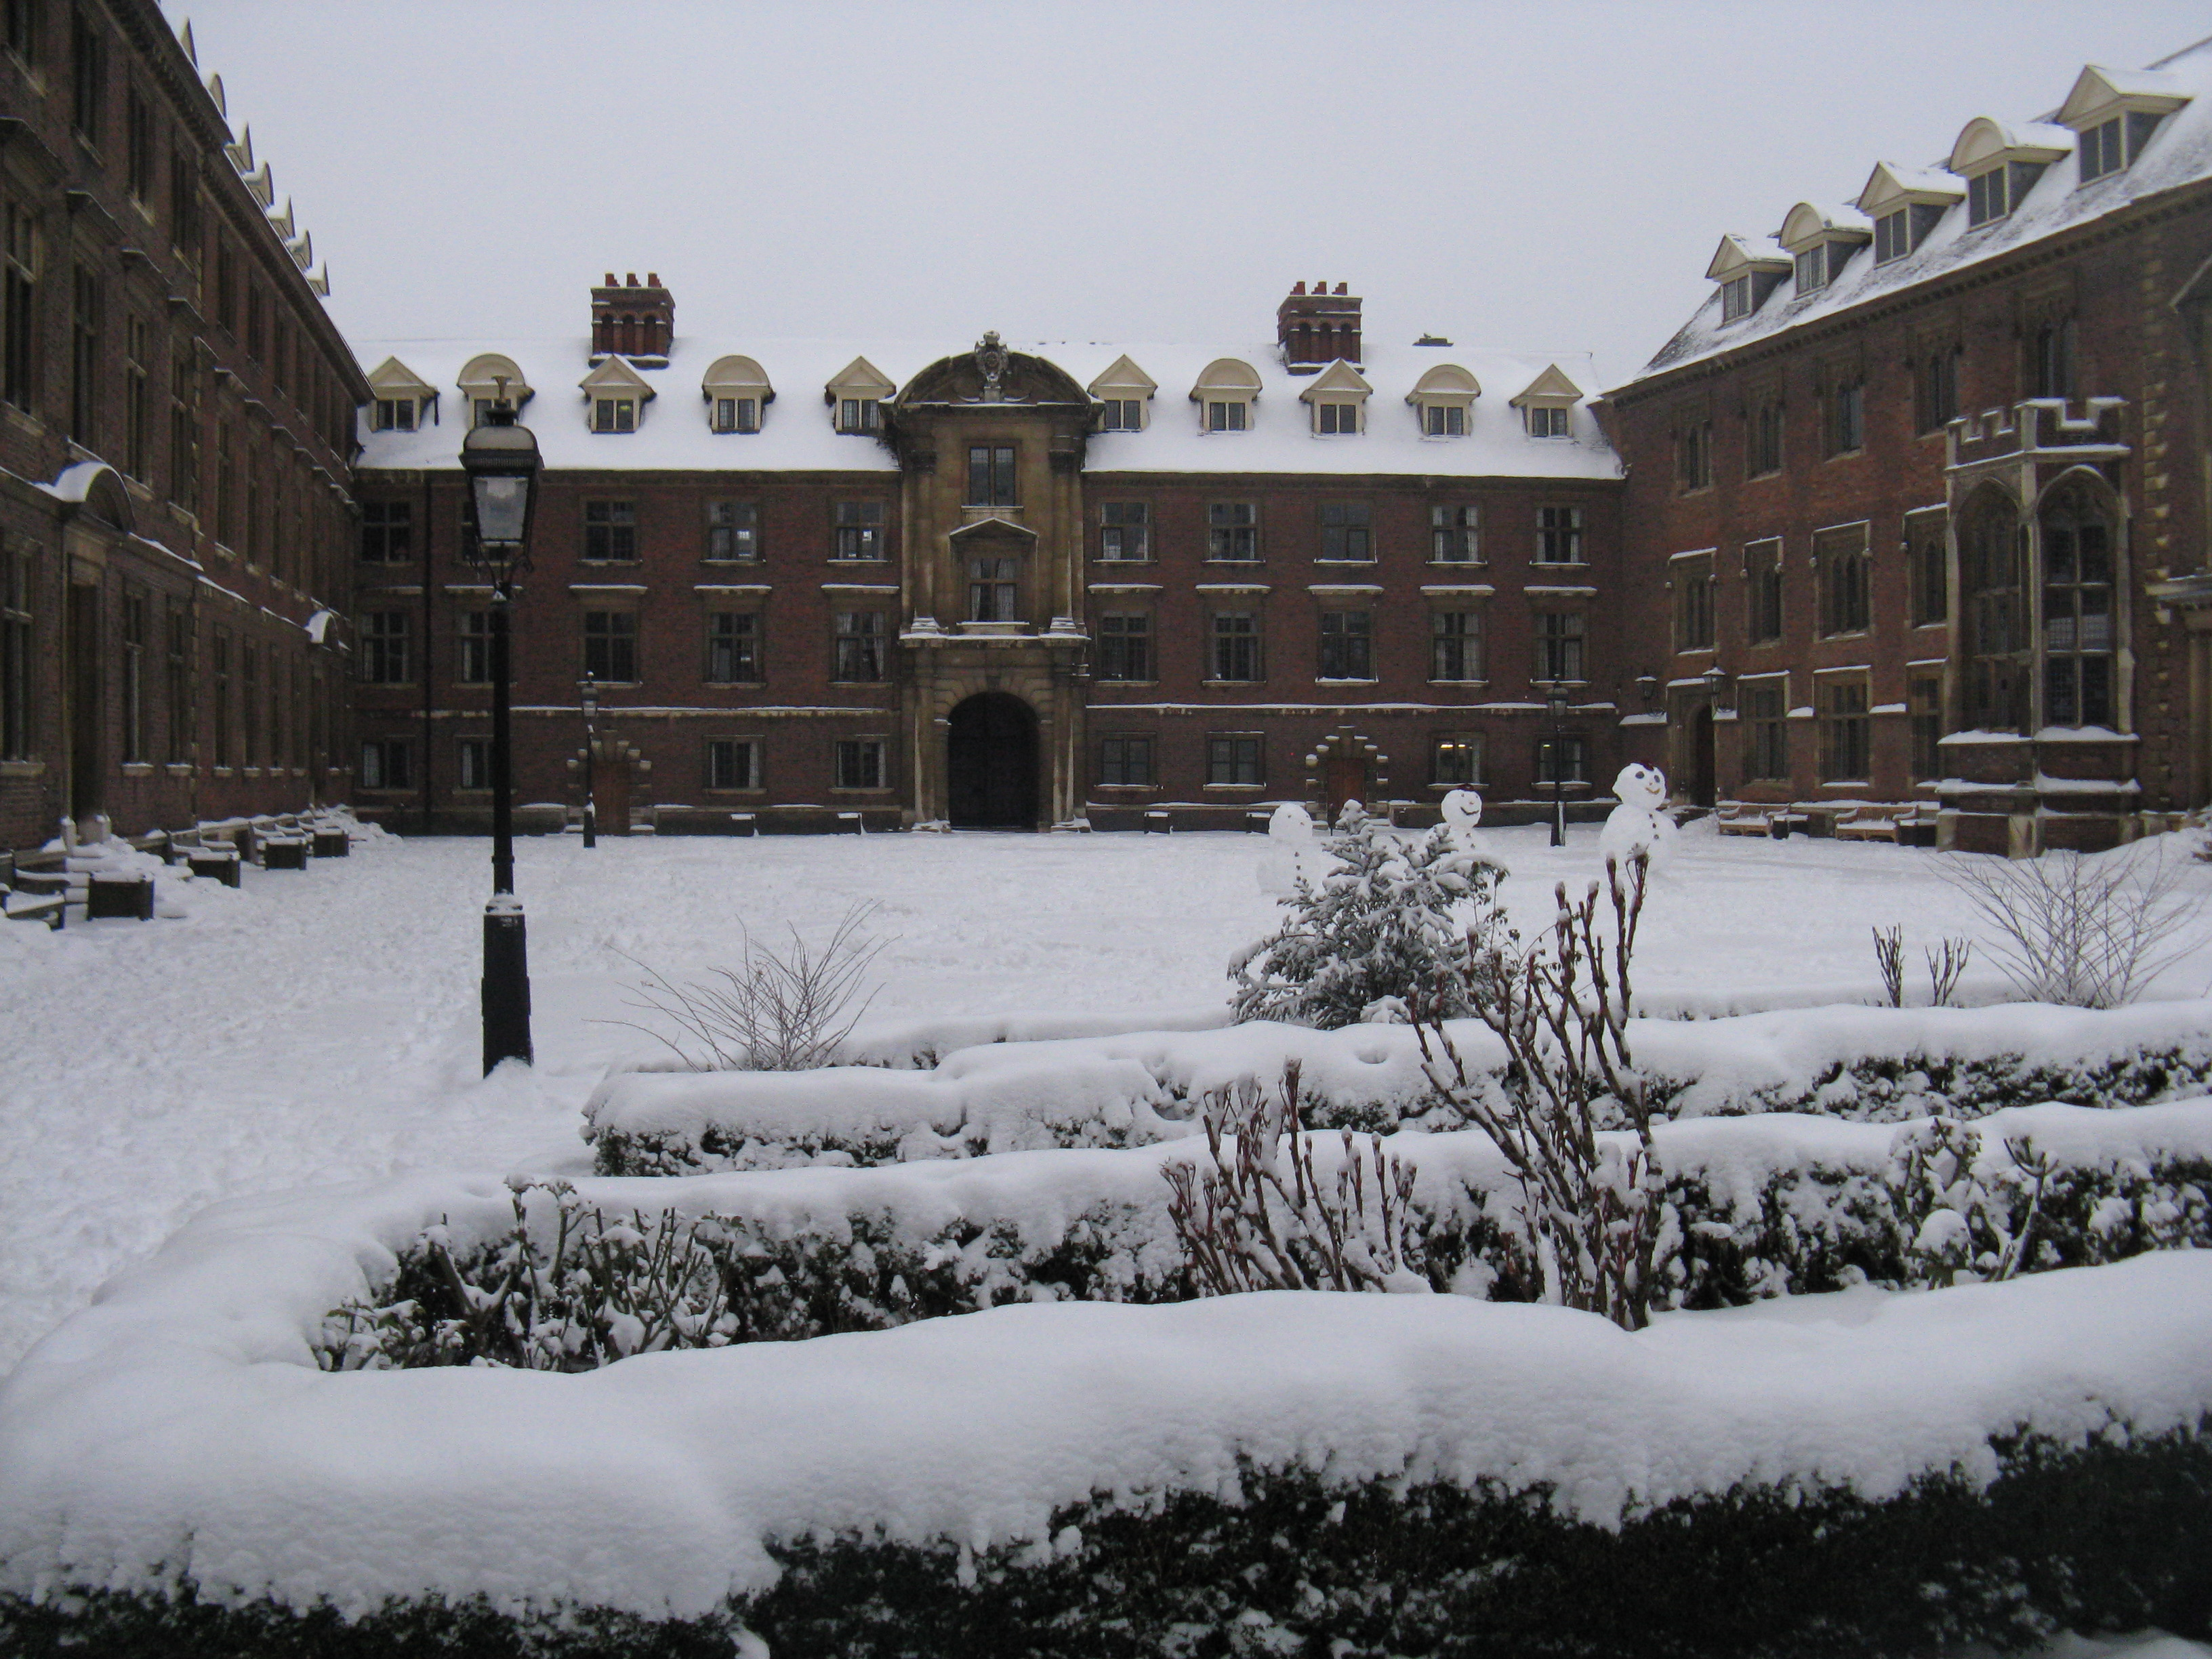 St. Catharine's College